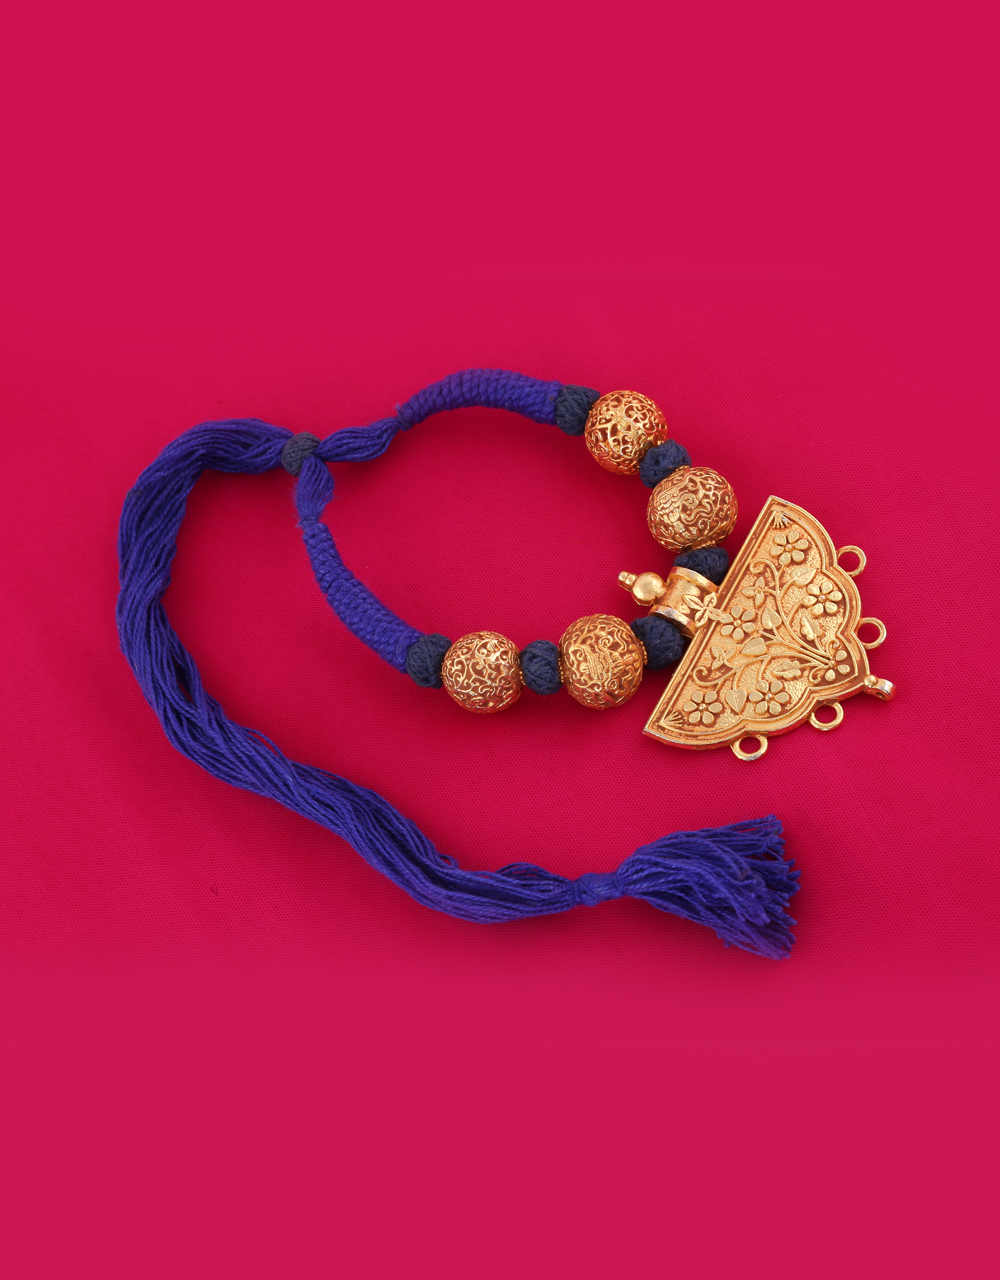 Blue Colour Gold Finish Styled With Floral Design Peandant Beads Necklace